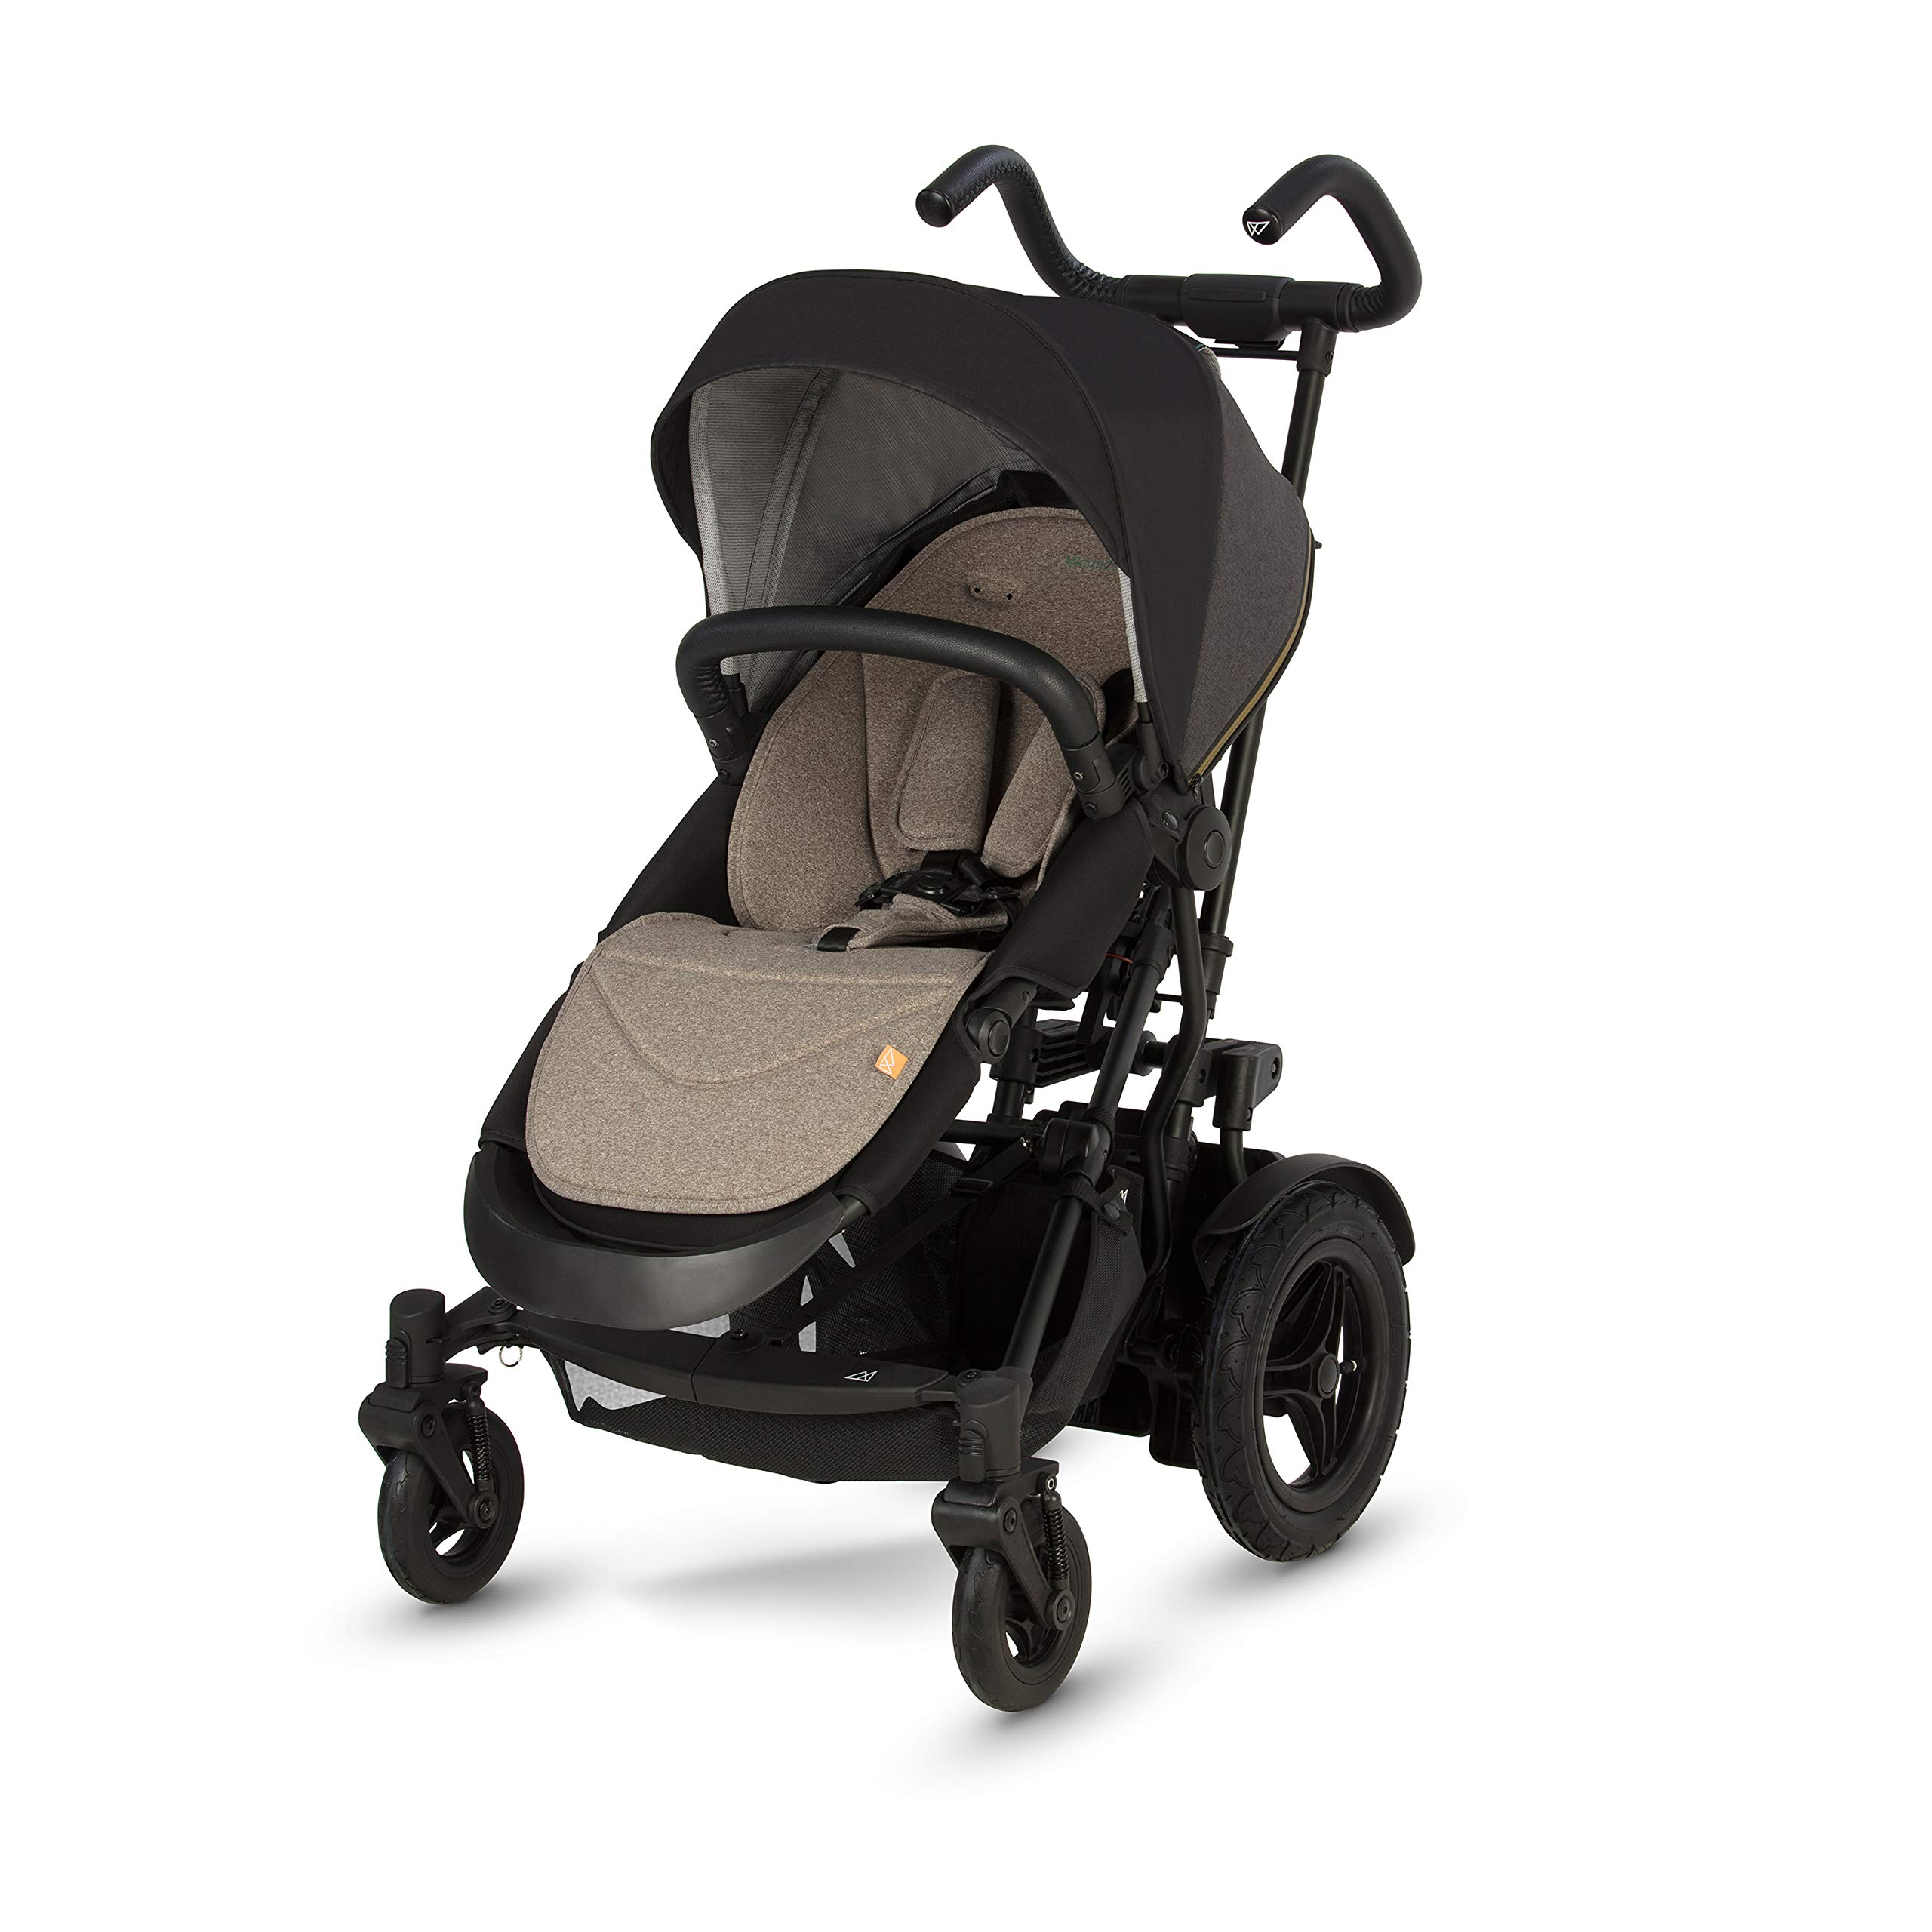 Micralite TwoFold All Terrain 2 in 1 Travel System Stroller - from Single to Double in Seconds - Built in Kick Board and Puncture Proof Tires (Carbon)